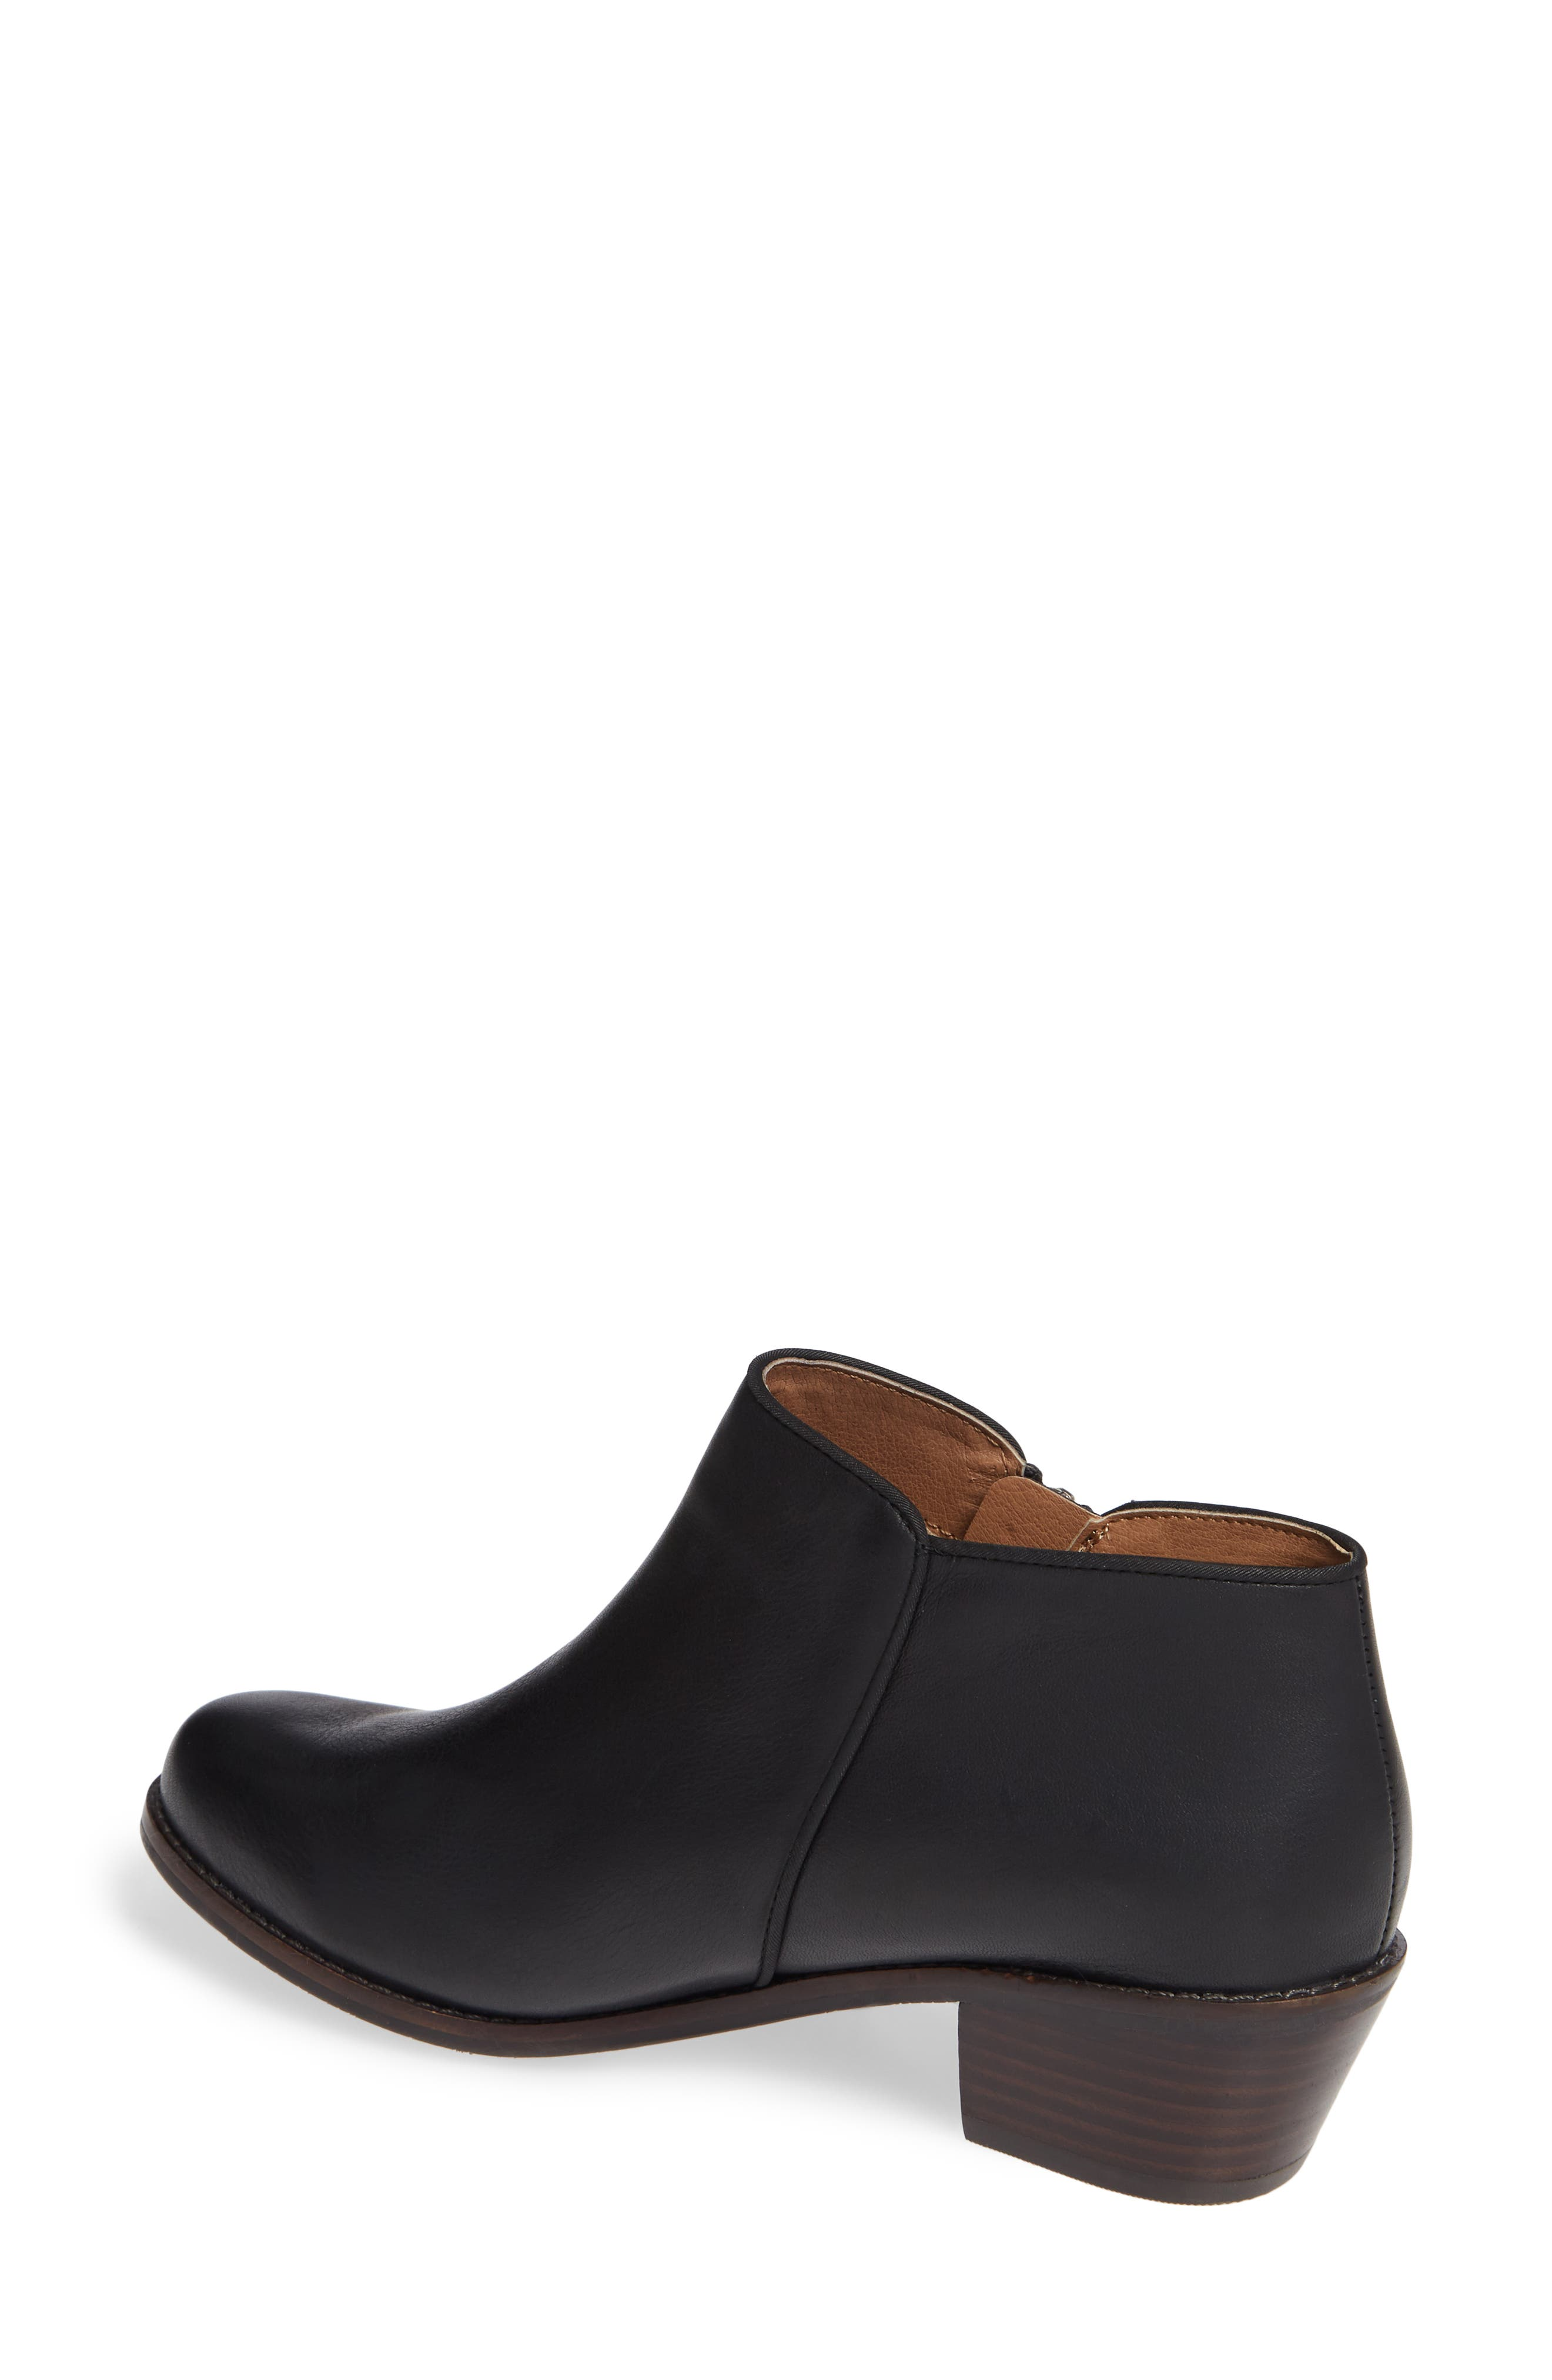 Jolene Bootie,                             Alternate thumbnail 2, color,                             BLACK LEATHER